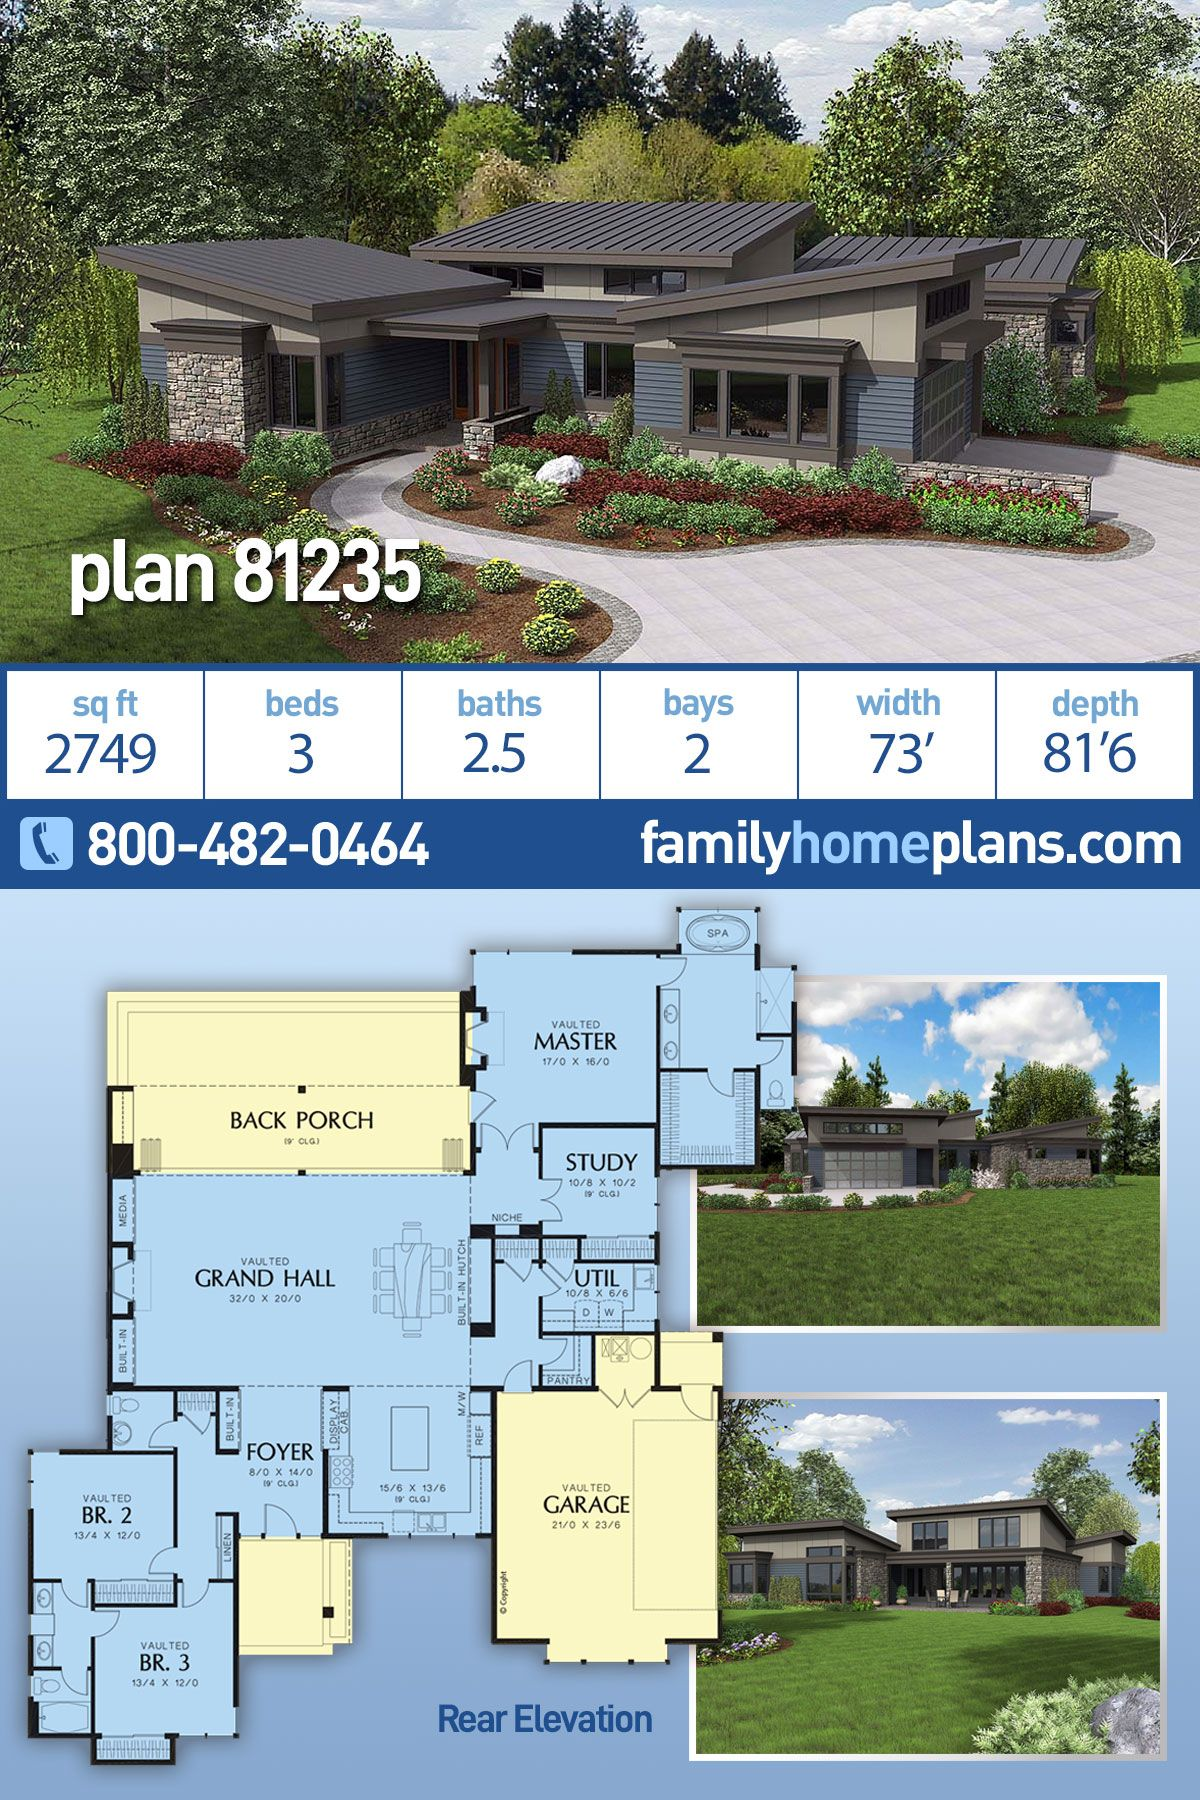 Modern Style House Plan 81235 With 3 Bed 3 Bath 2 Car Garage Modern Style House Plans House Plans New House Plans